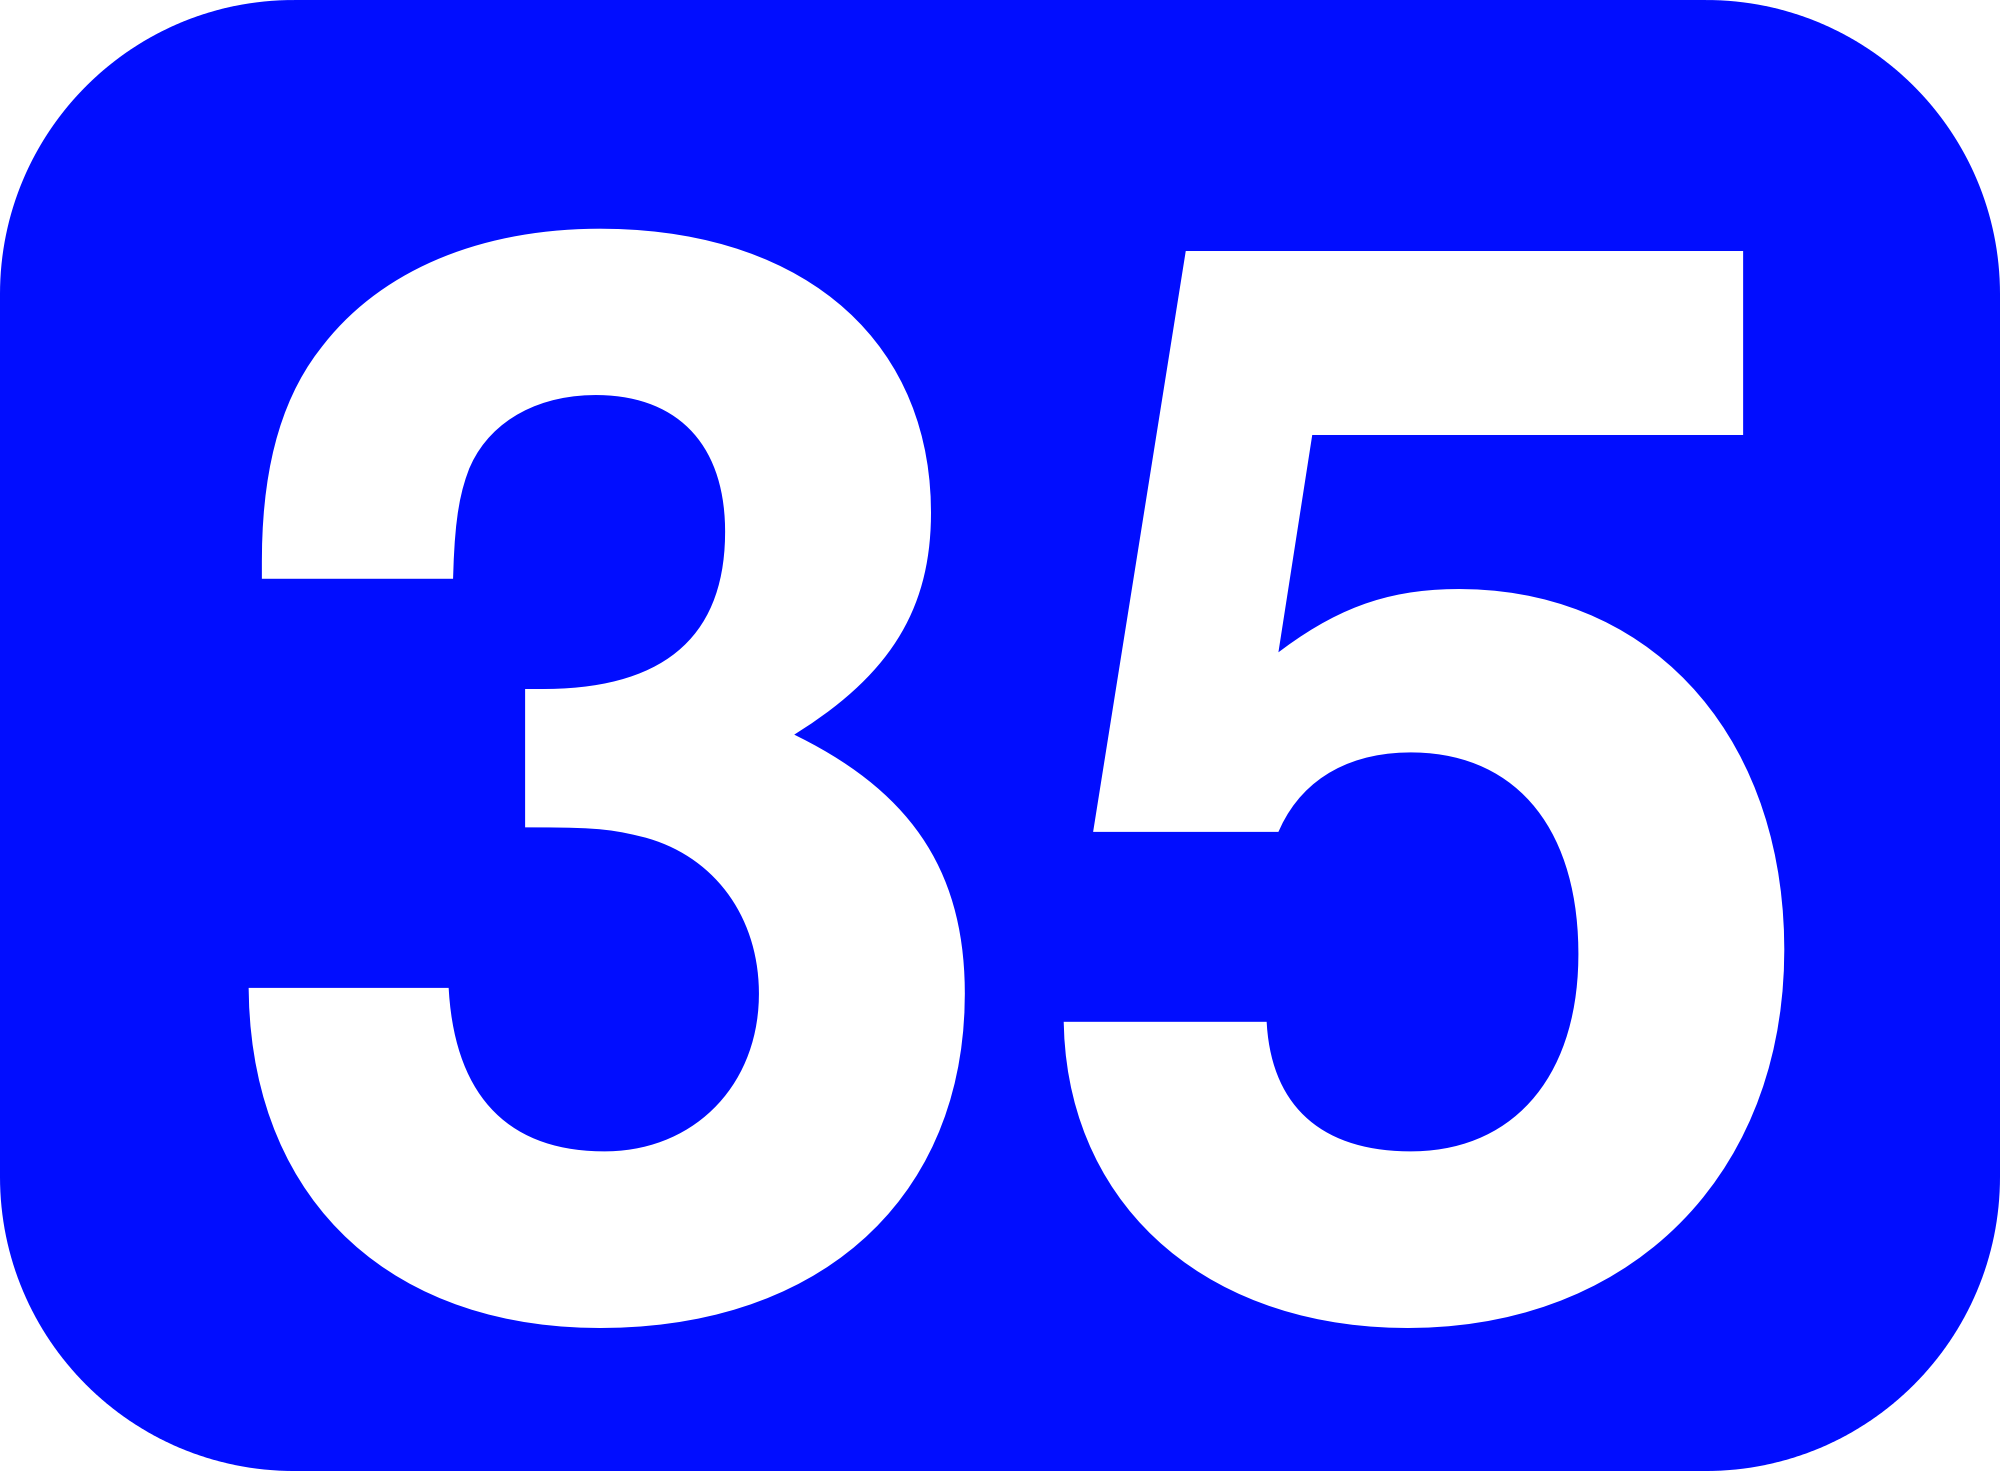 File:35 white, blue rounded rectangle.png